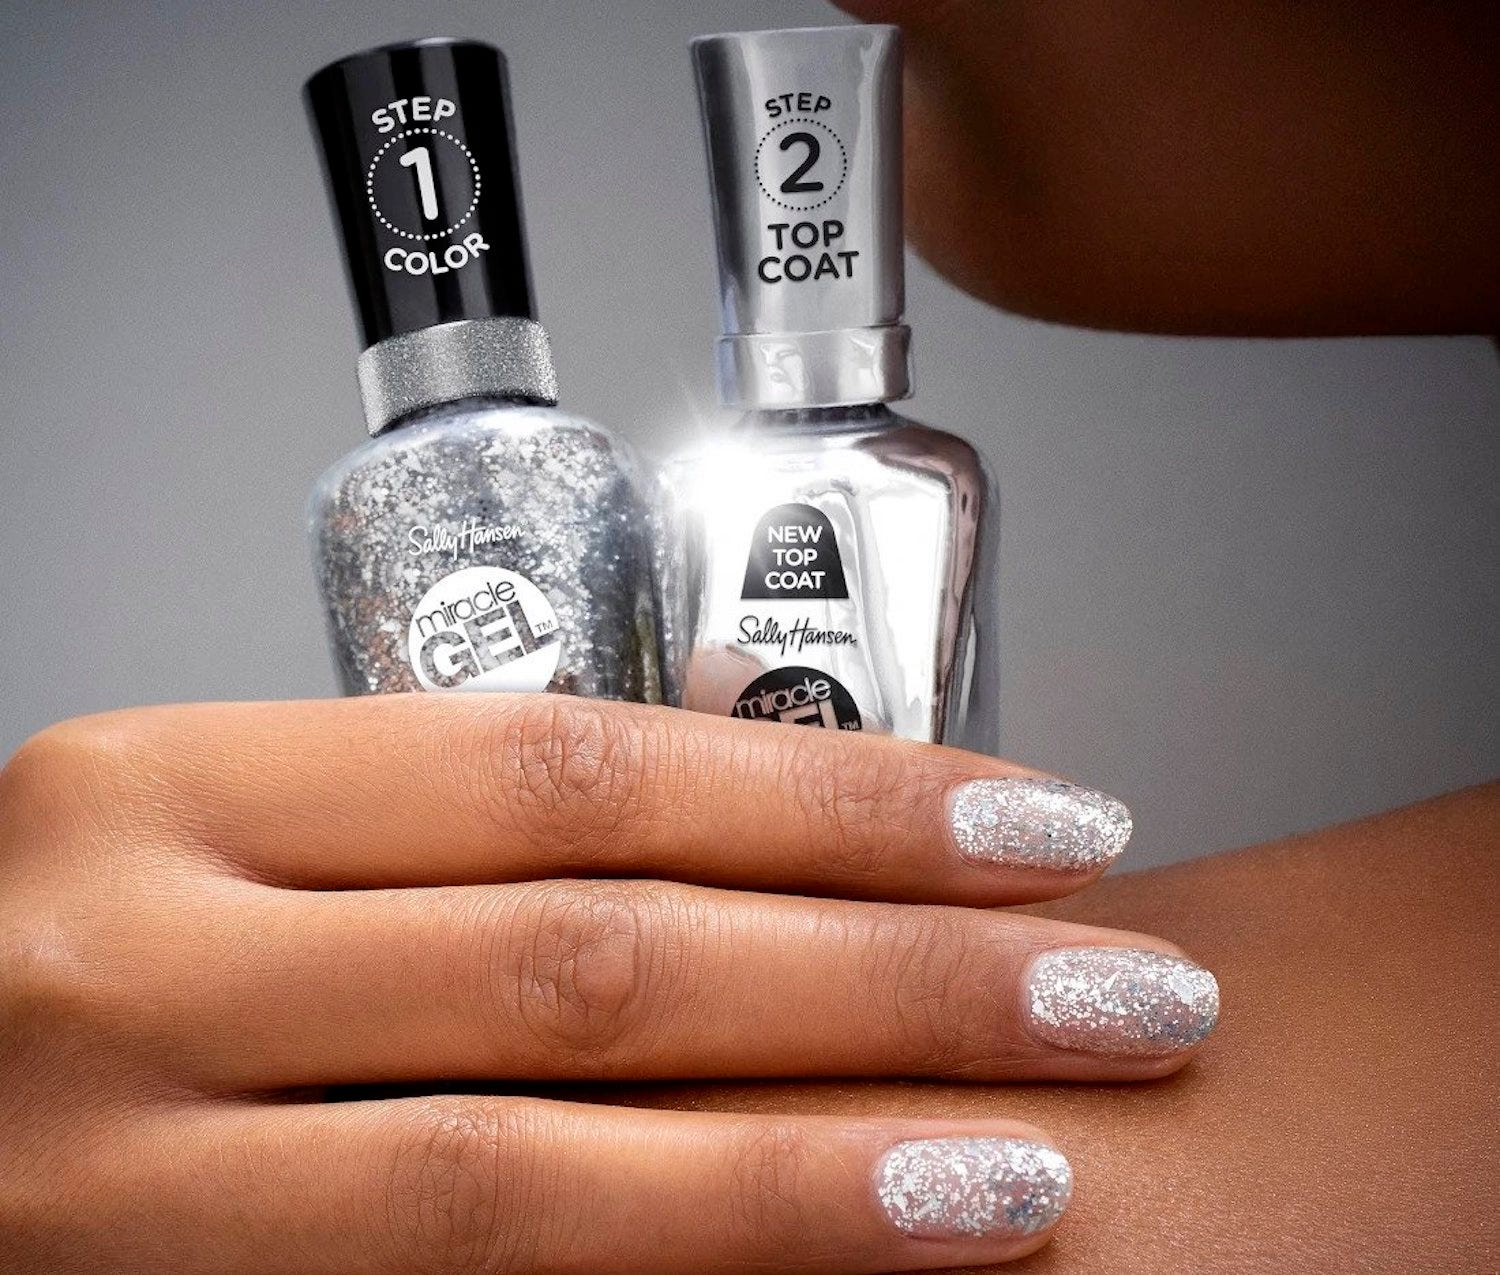 A dark-skinned hand with silver nails holding two nail polish bottles